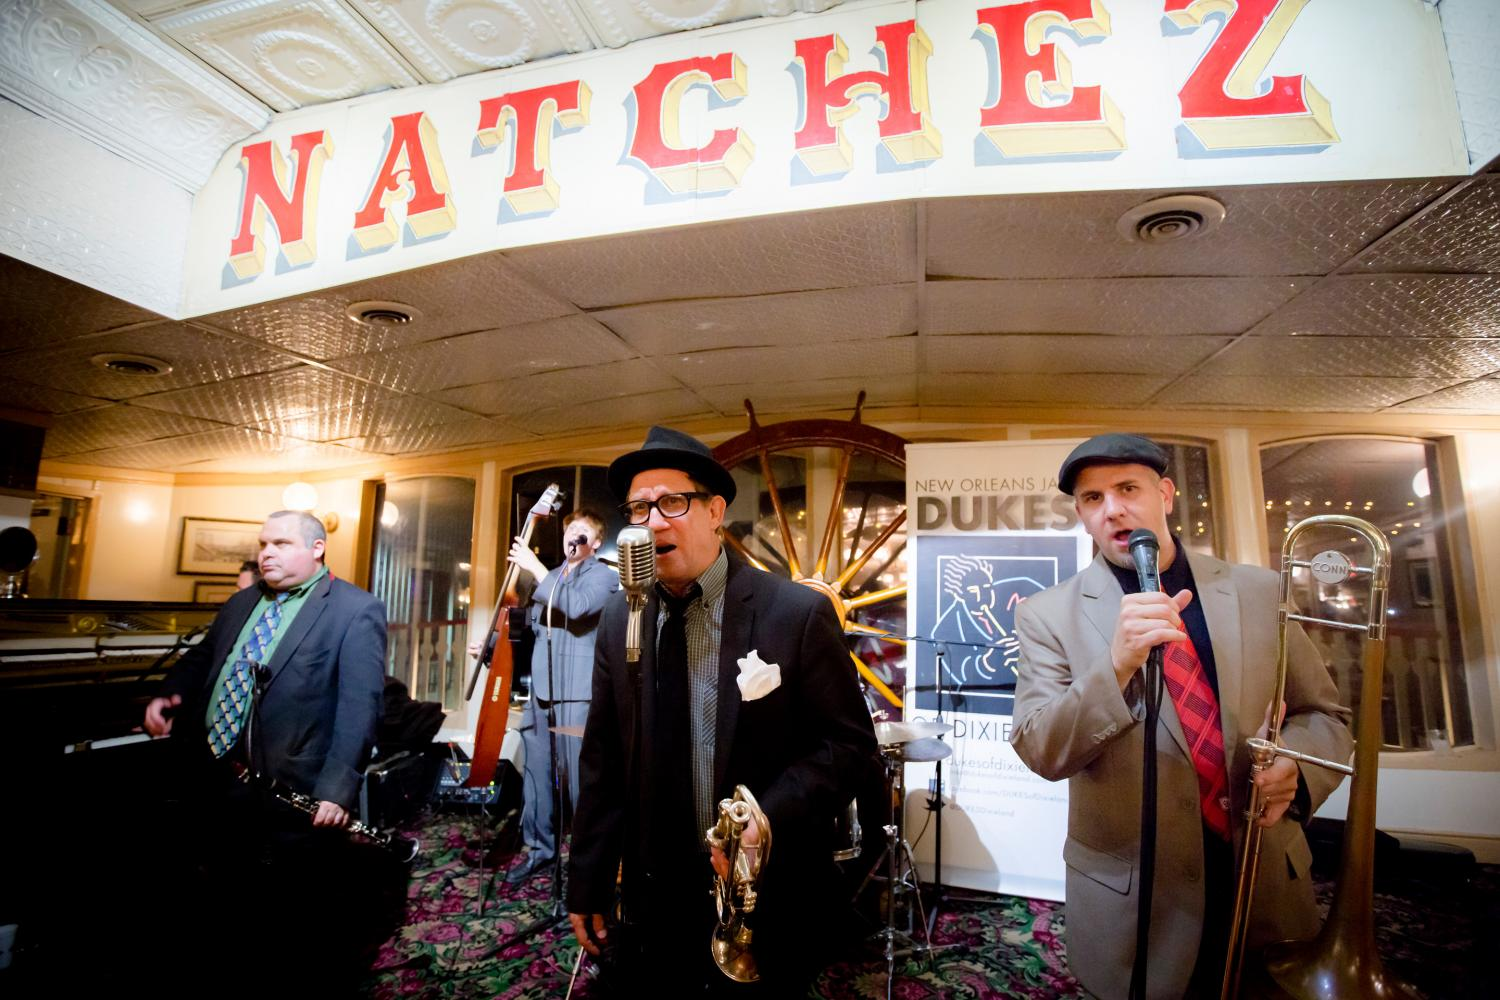 New Orleans Steamboat Natchez Daytime Jazz Cruise With Lunch